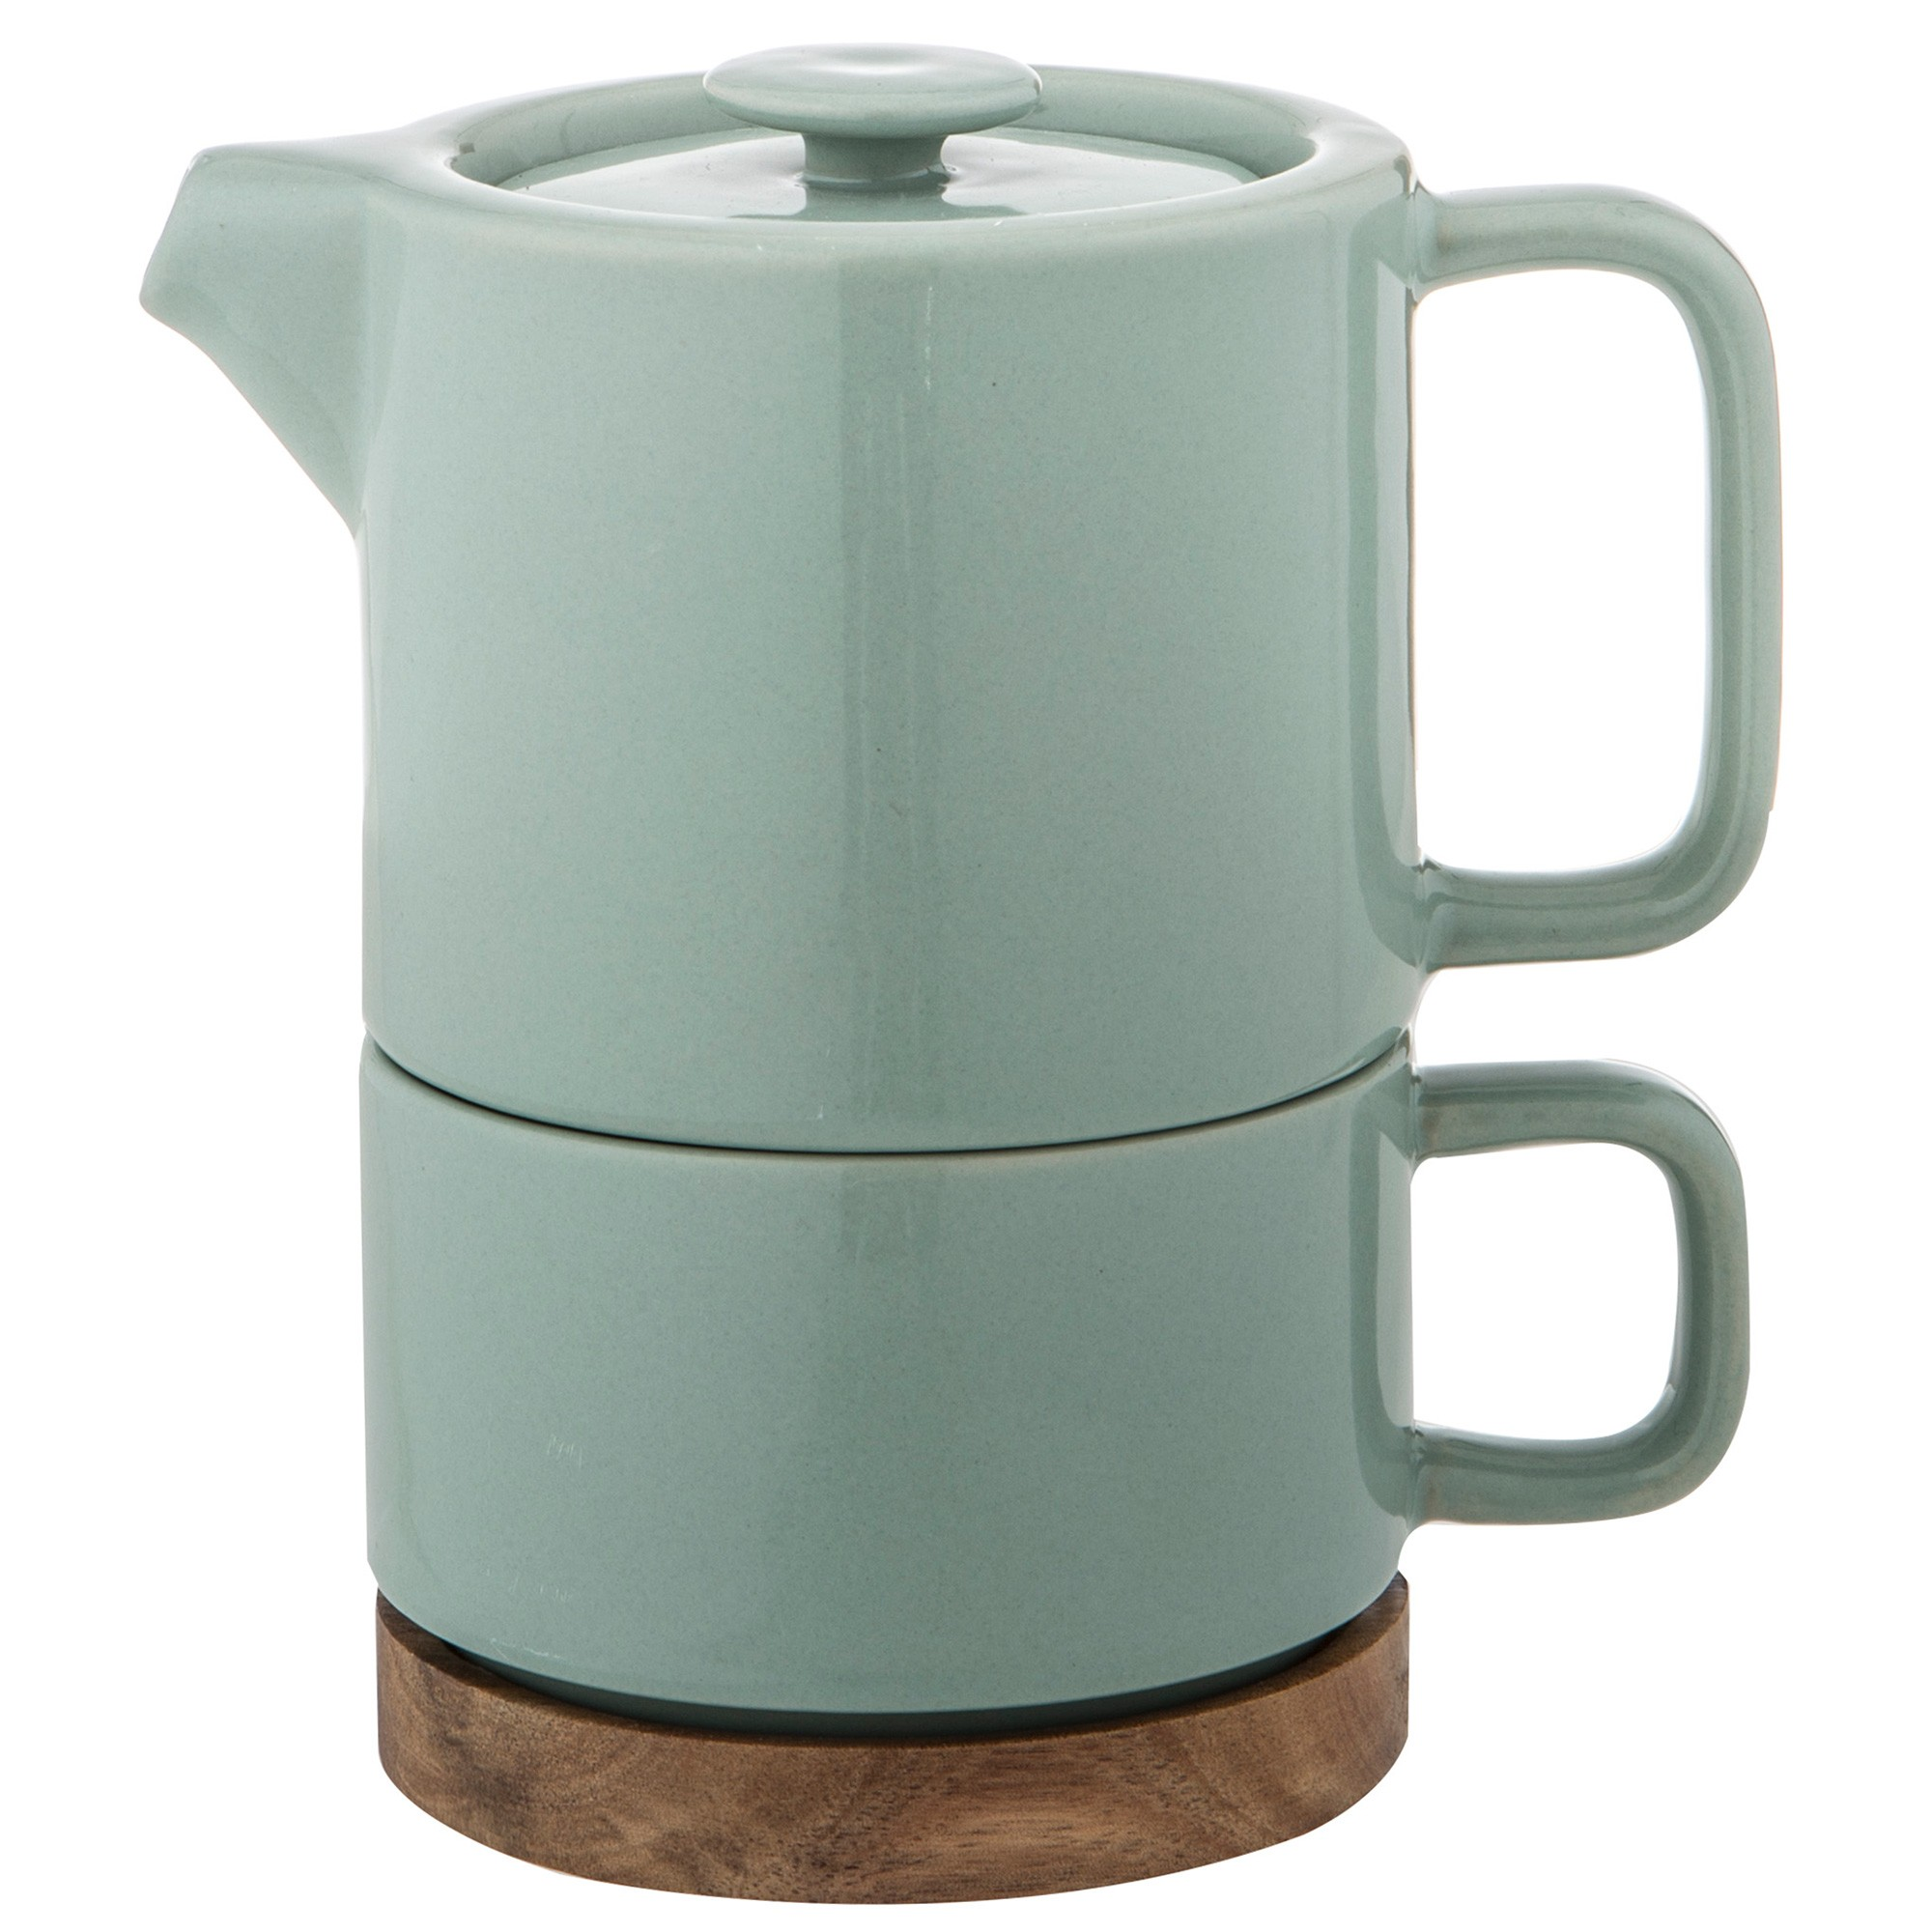 Leaf & Bean Soren Tea For One Ceramic Teapot & Cup Set, Sea Green